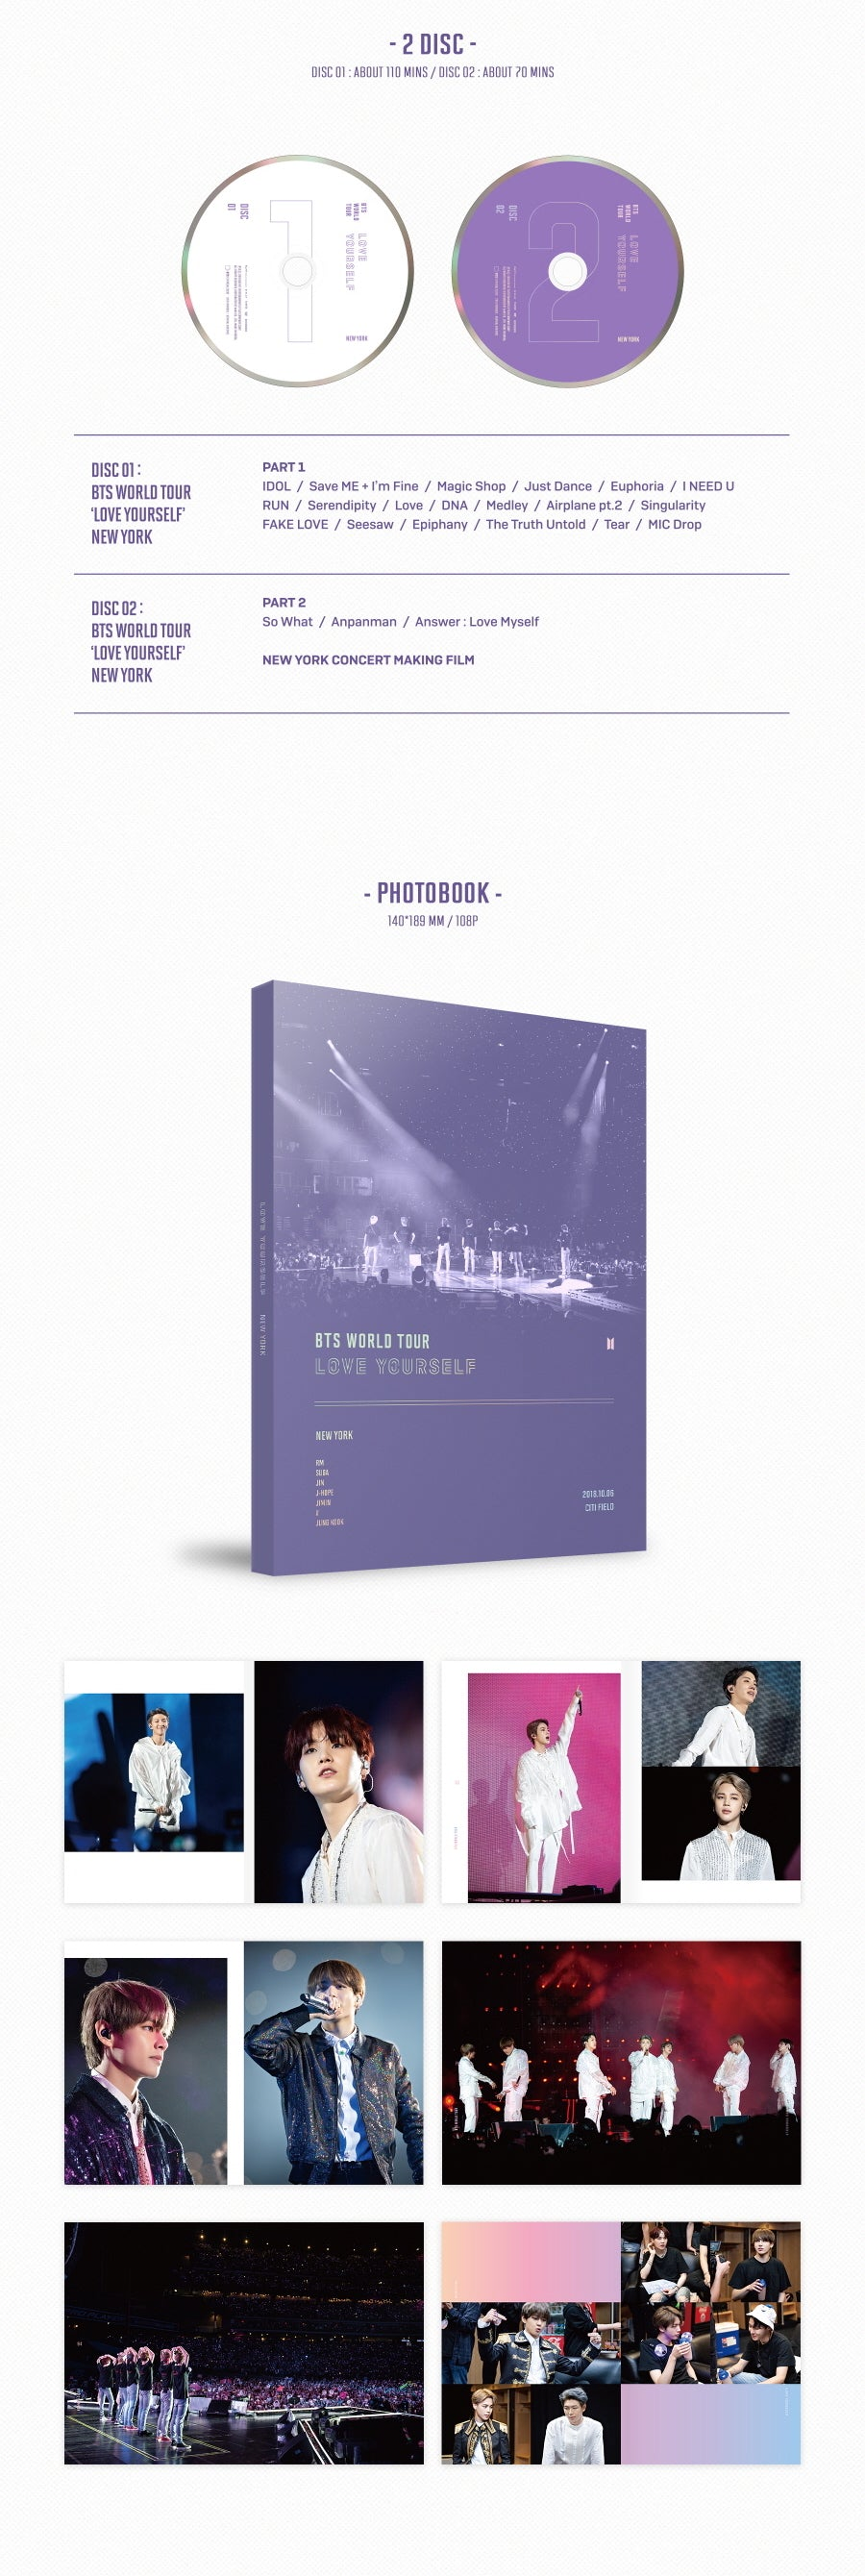 BTS - Love Yourself : New York - 2 DVDs - Pre-Order